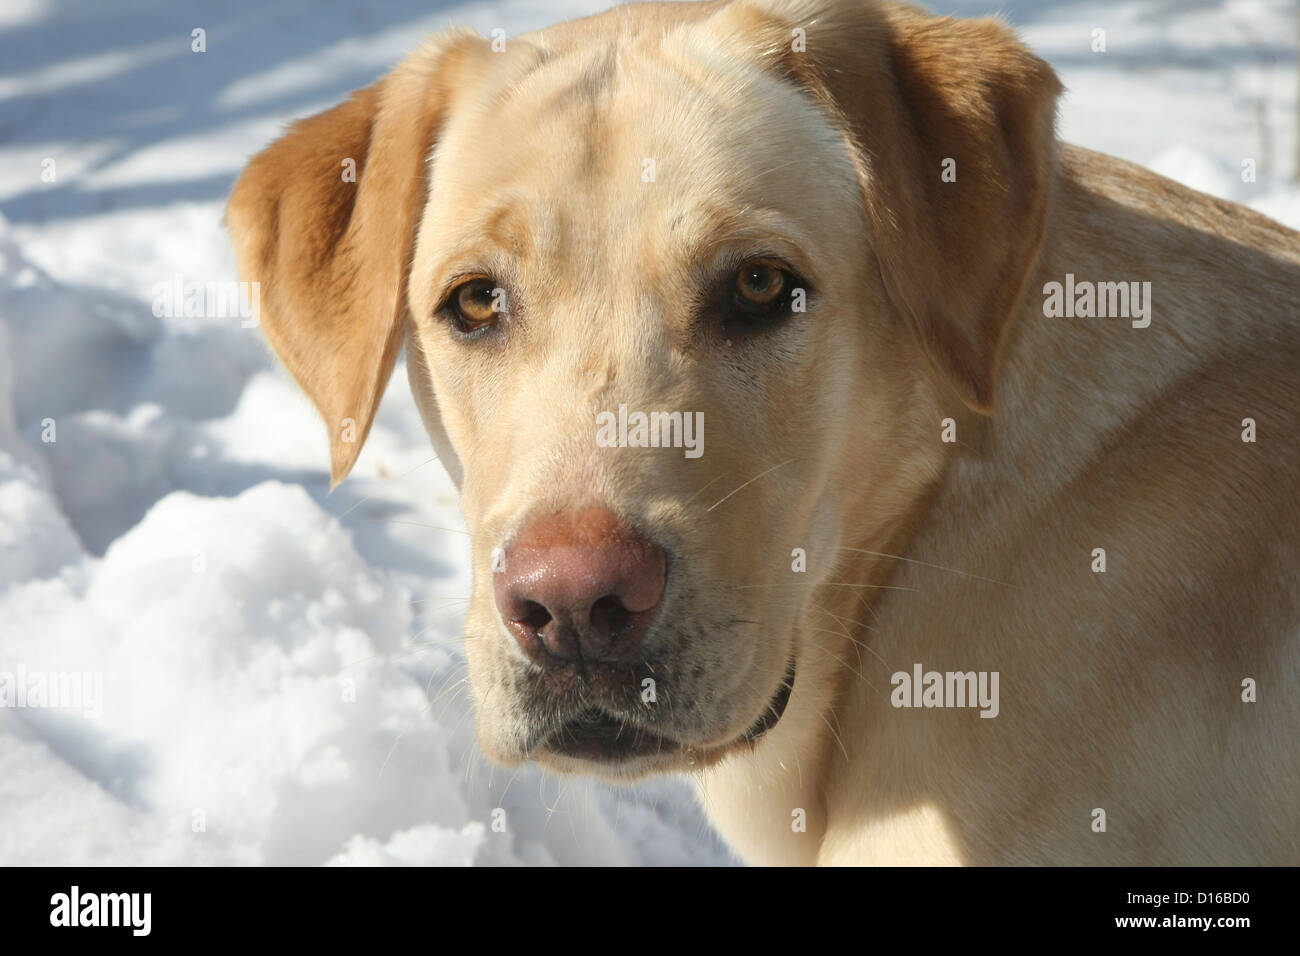 Labrador Retriever, Canis lupus familiaris, Feldberg, Feldberger Seenlandschaft, Mecklenburg-Vorpommern, Germany Stock Photo